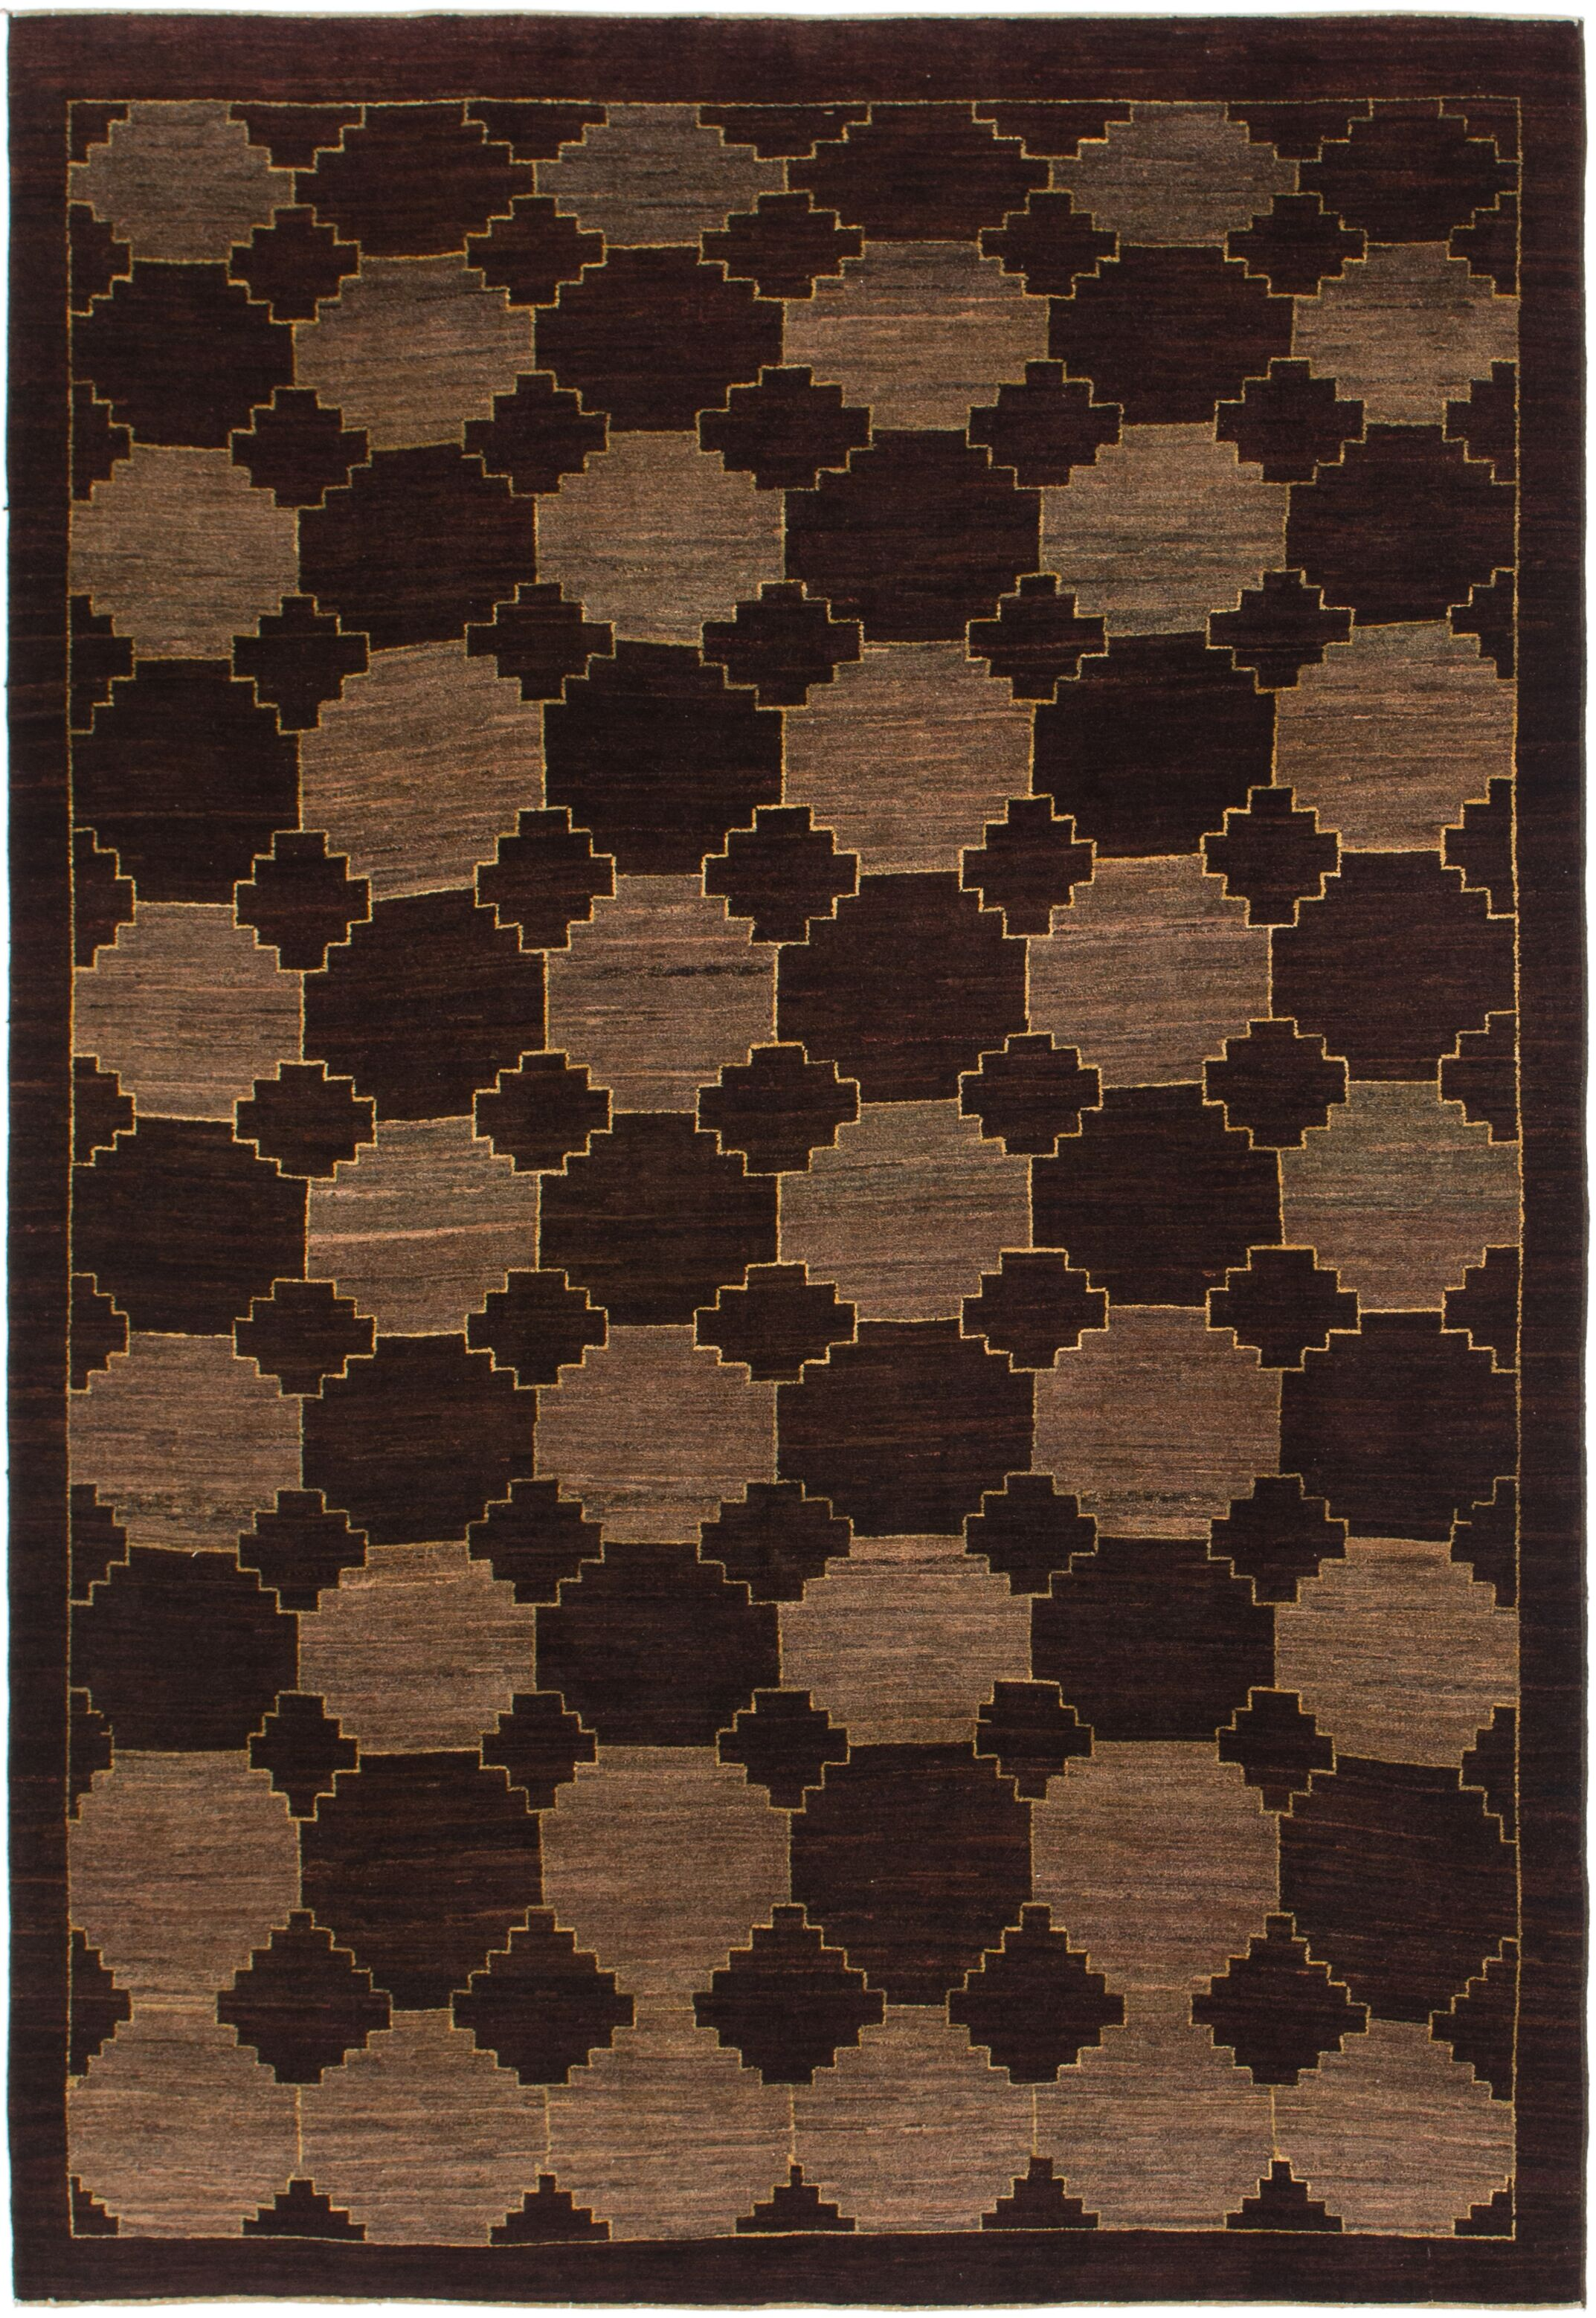 One-of-a-Kind Didcot Hand-Knotted 6' x 9' Wool Burgundy/Brown Area Rug